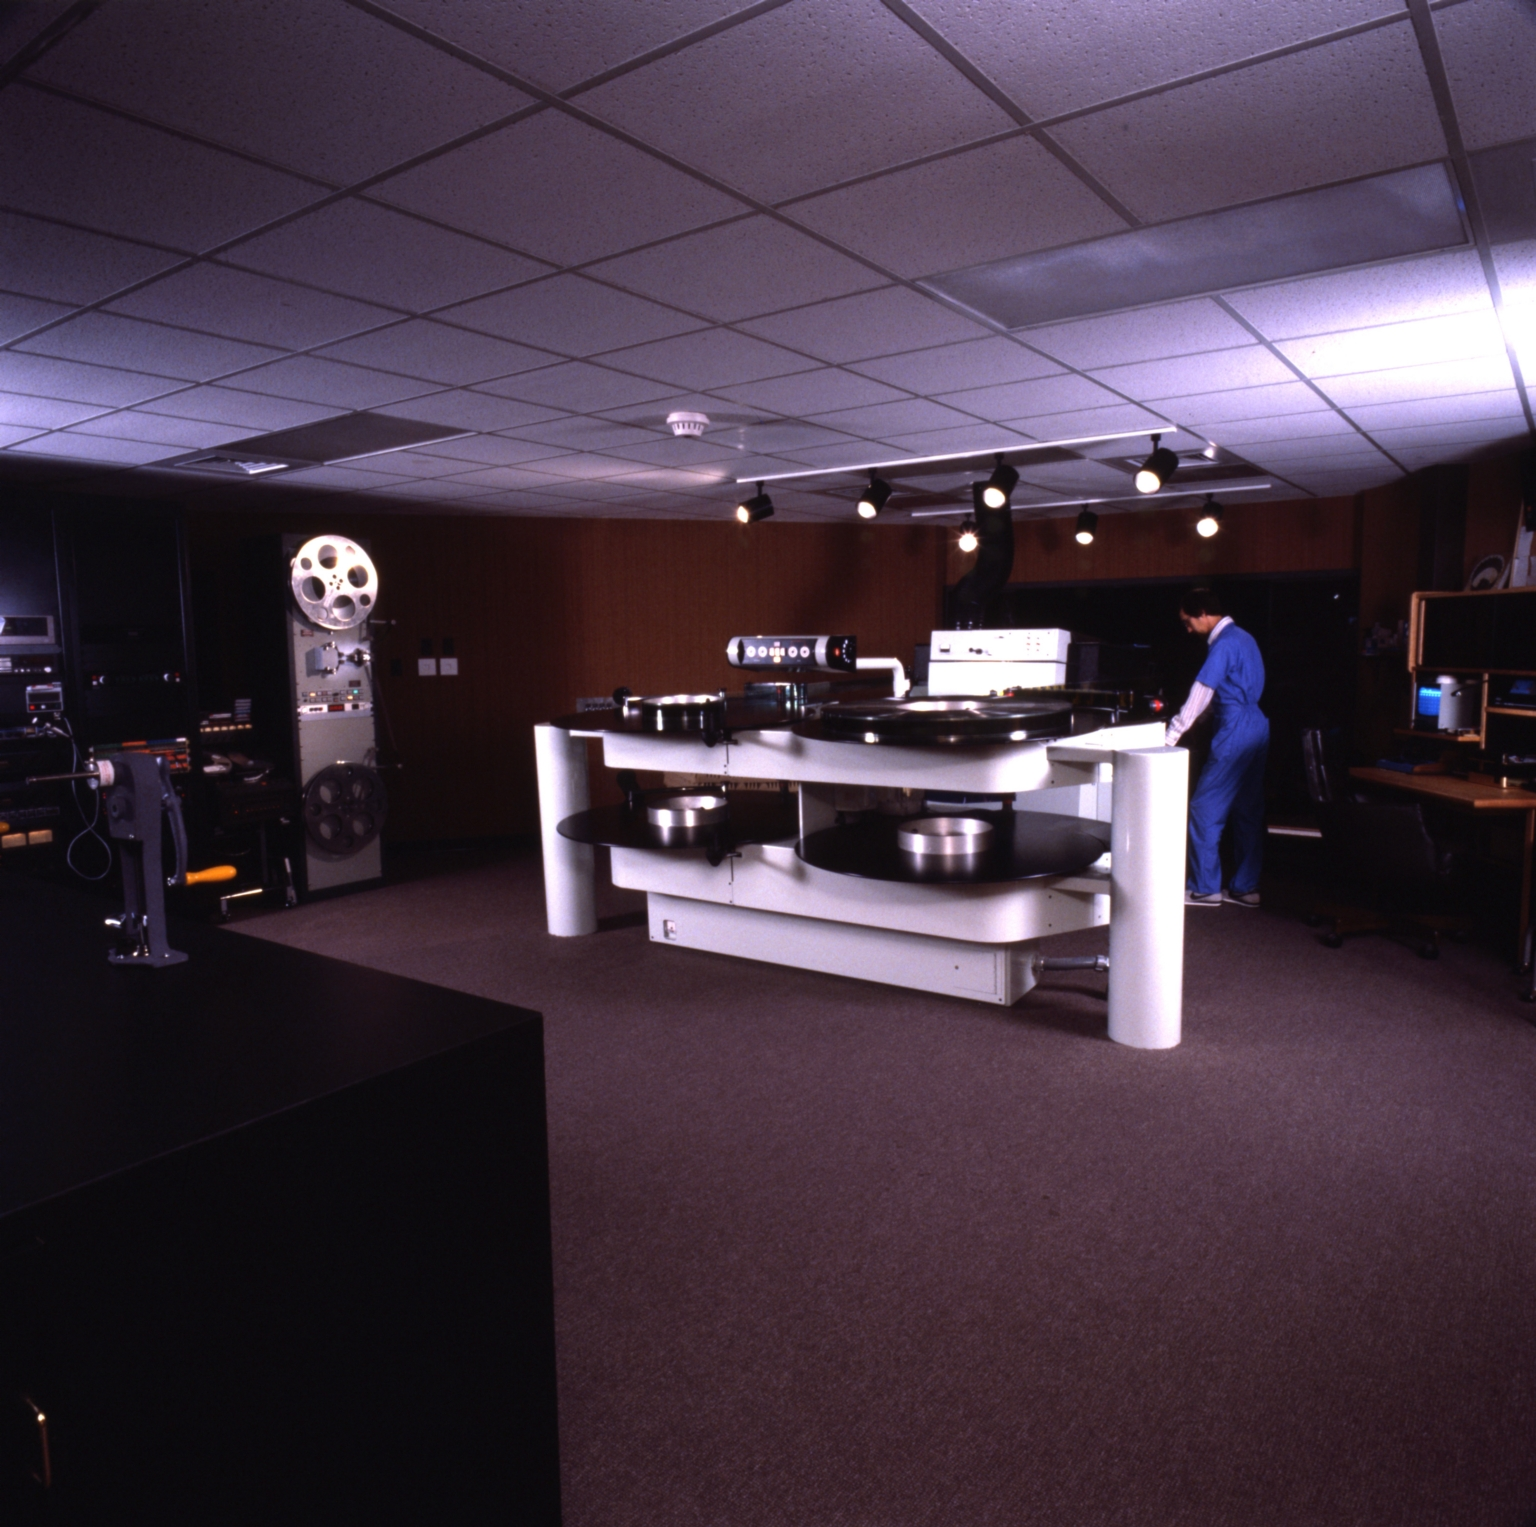 IMAX Projection Booth